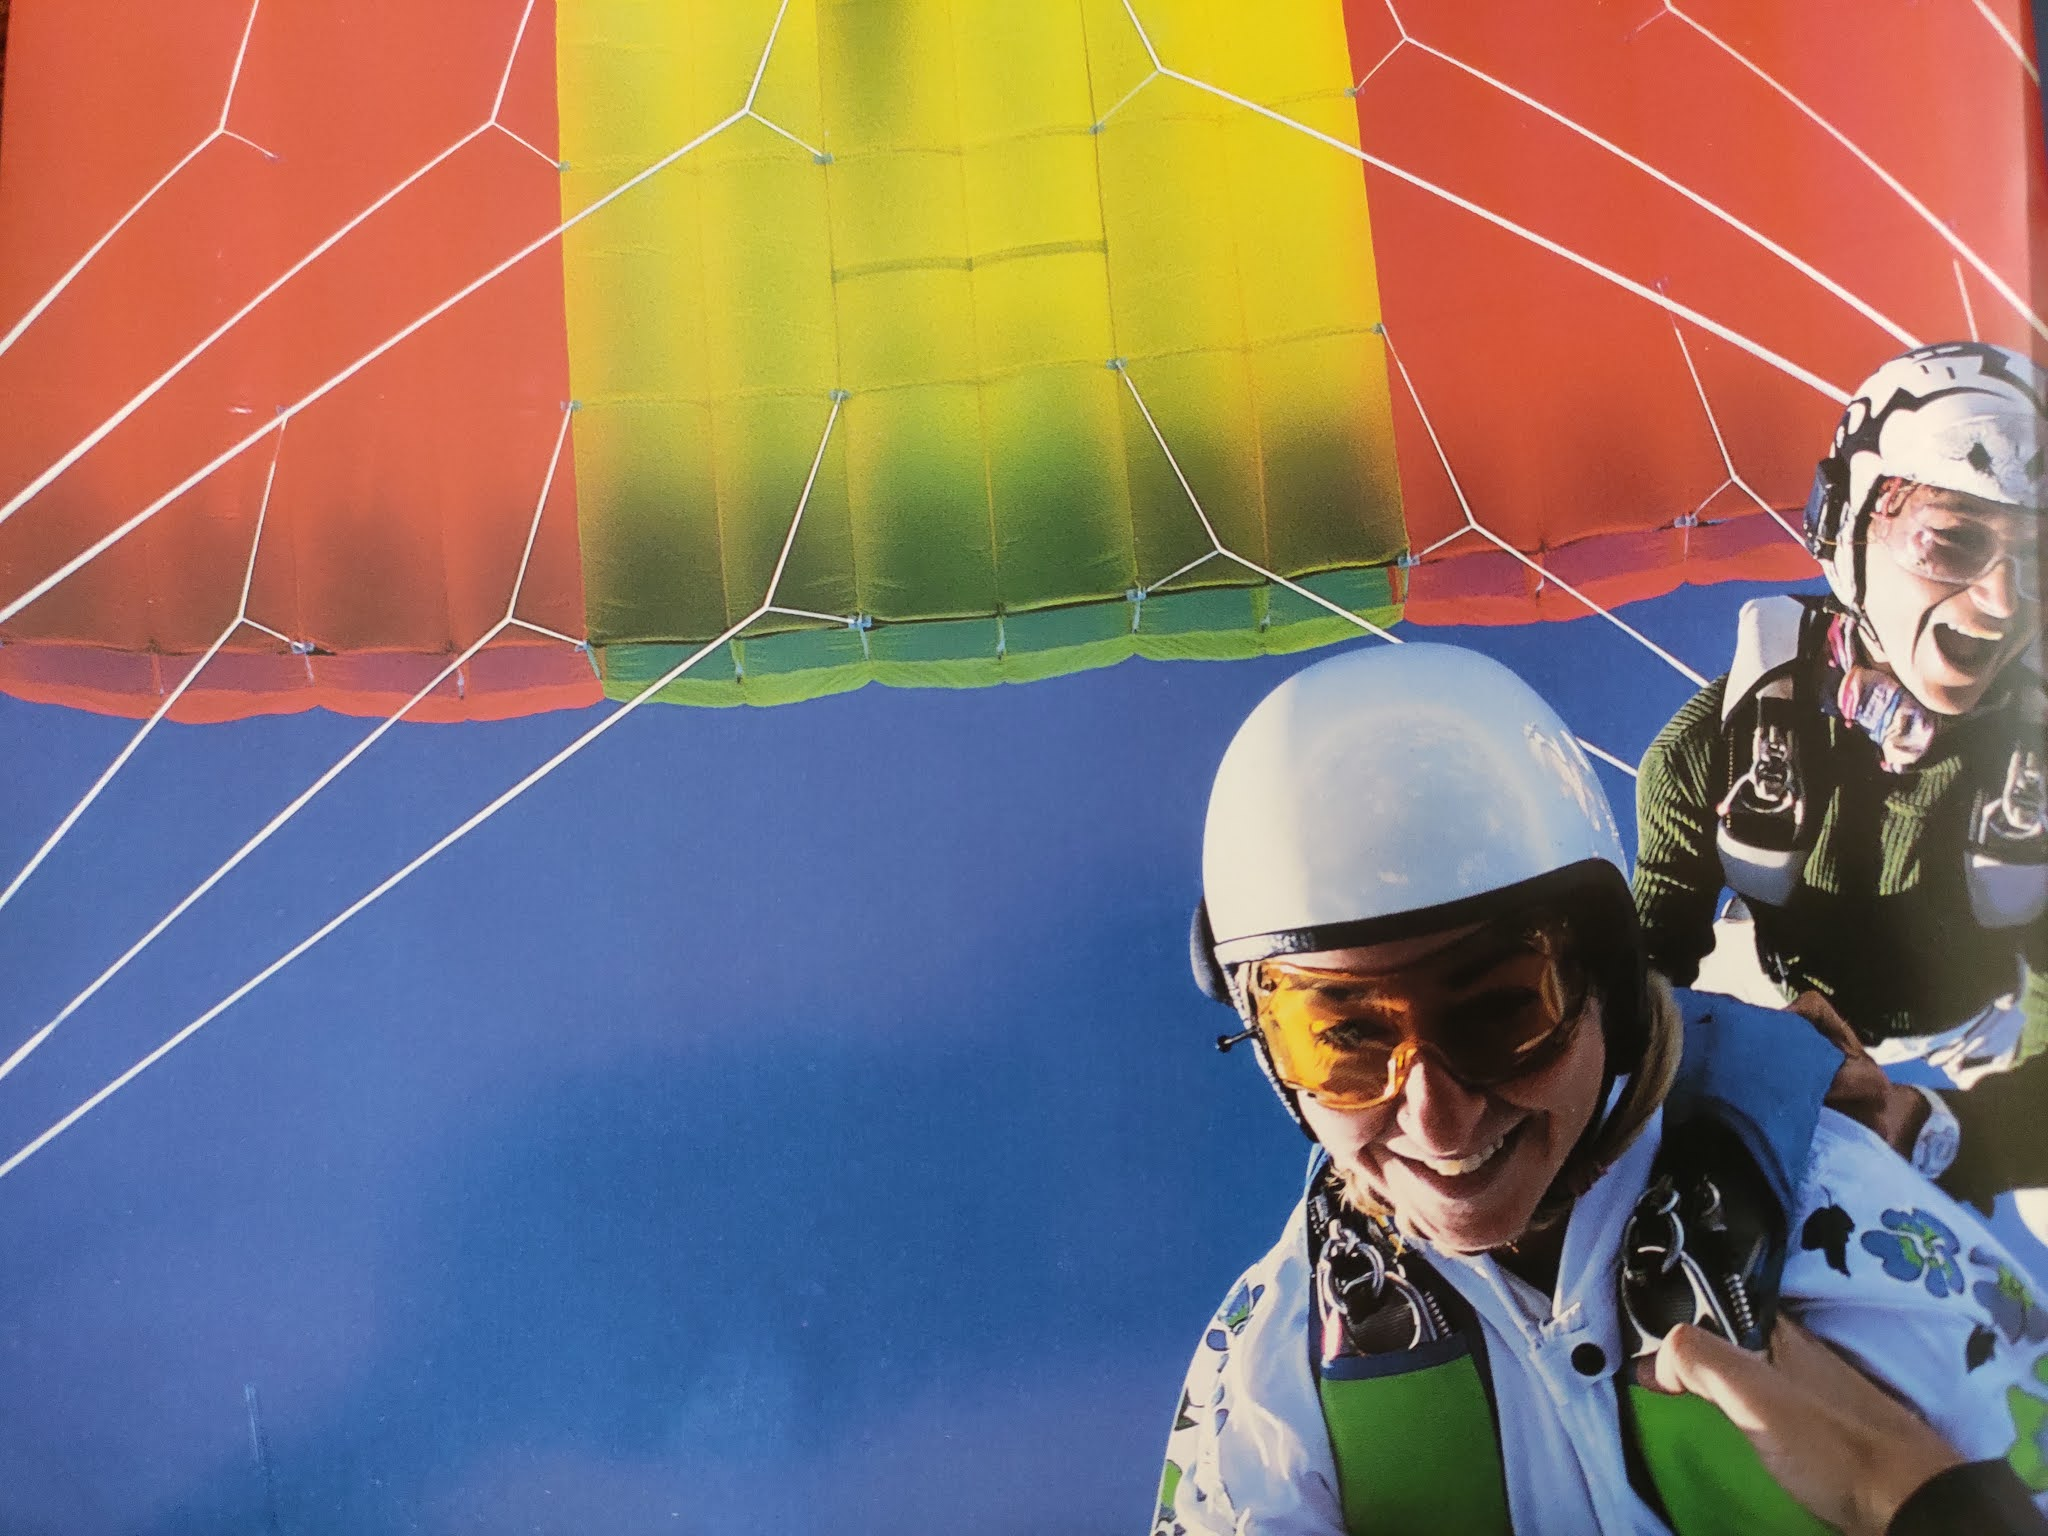 Image contains 2 people paragliding